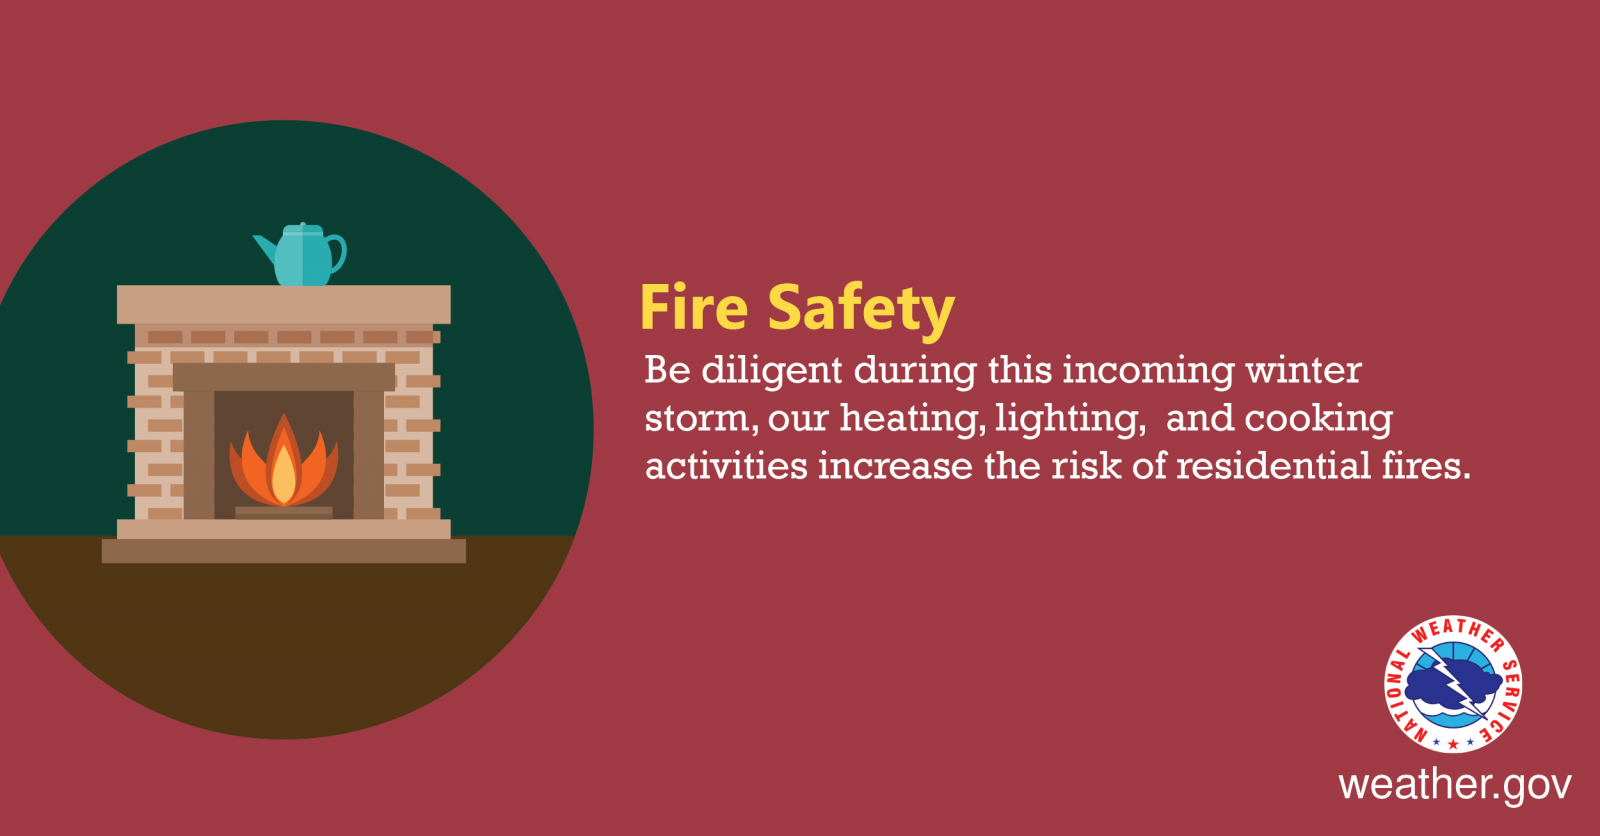 Fire Safety - Be diligient during this incoming winter storm, our heating, lighting, and cooking activities increase the risk of residential fires.